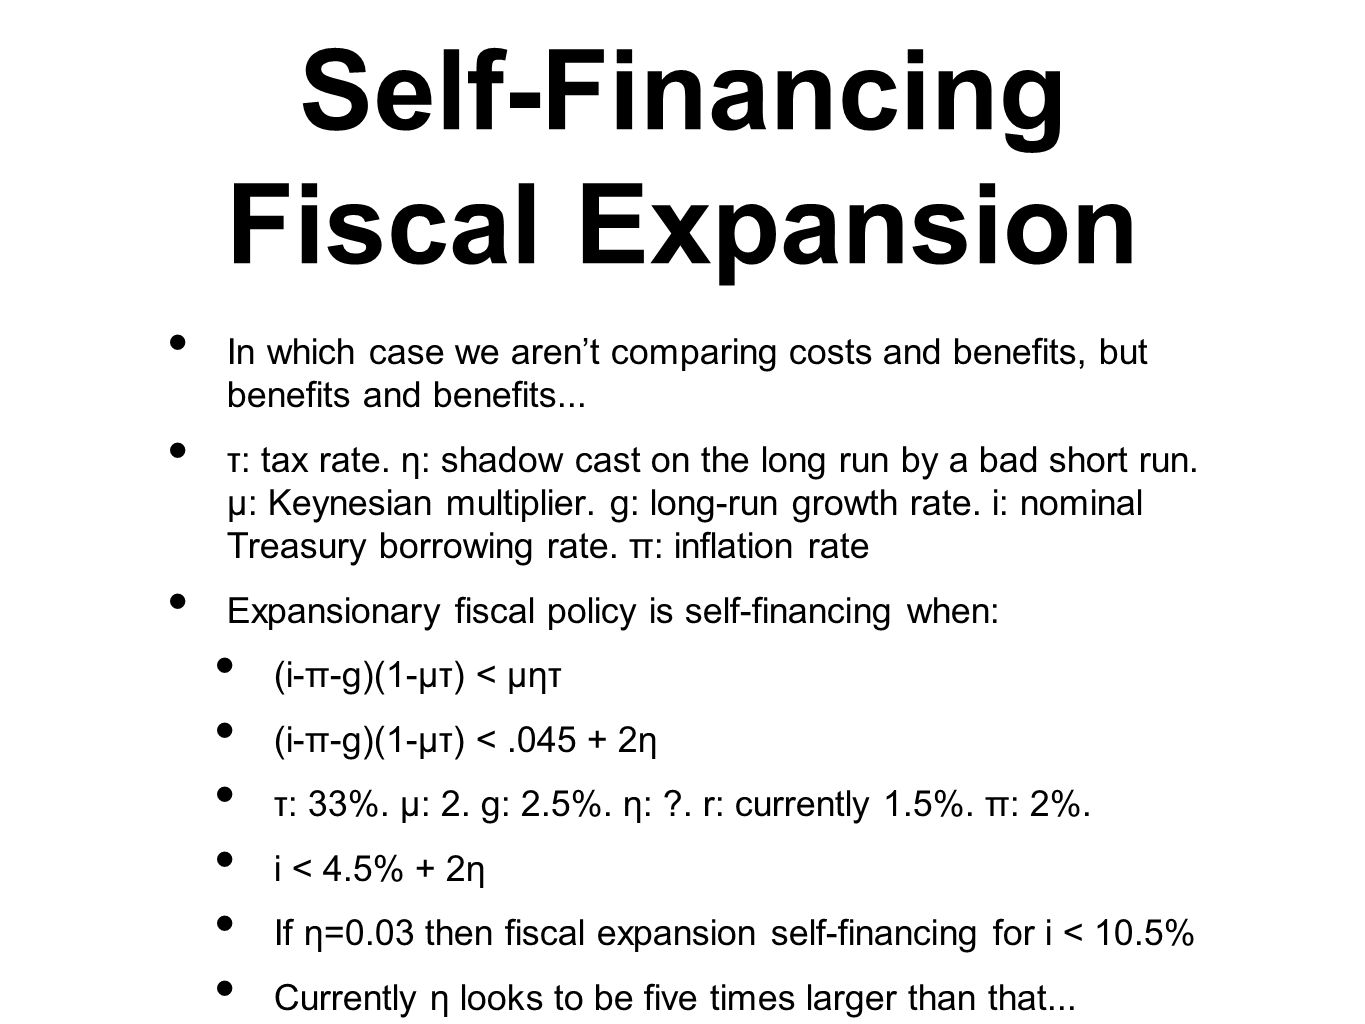 Self-Financing Fiscal Expansion In which case we arent comparing costs and benefits, but benefits and benefits...